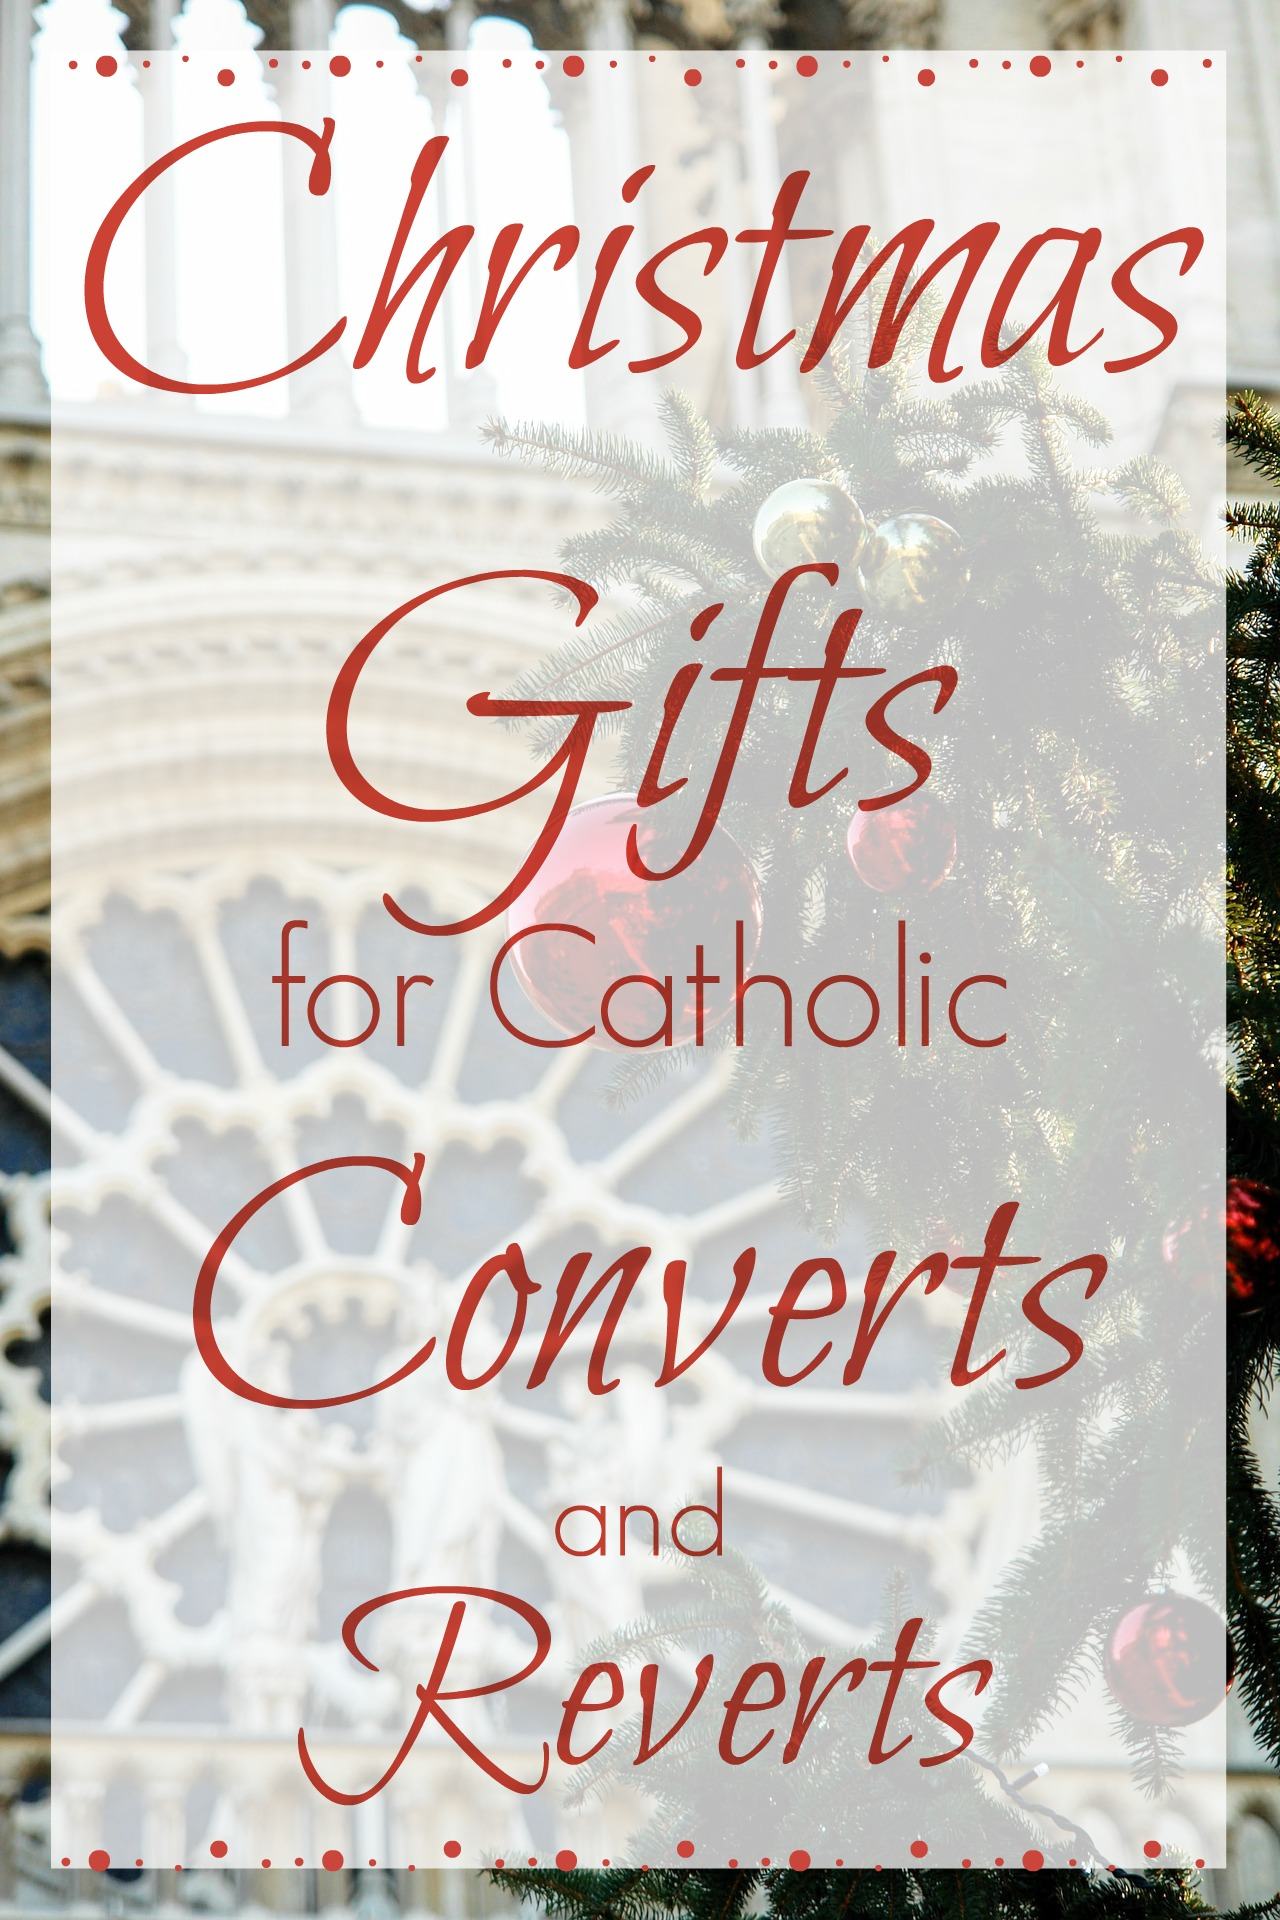 There seems to be an endless stream of occasions to shop for Catholic gifts. Baptisms, Confirmation, First Communion, RCIA teachers and sponsors, ...